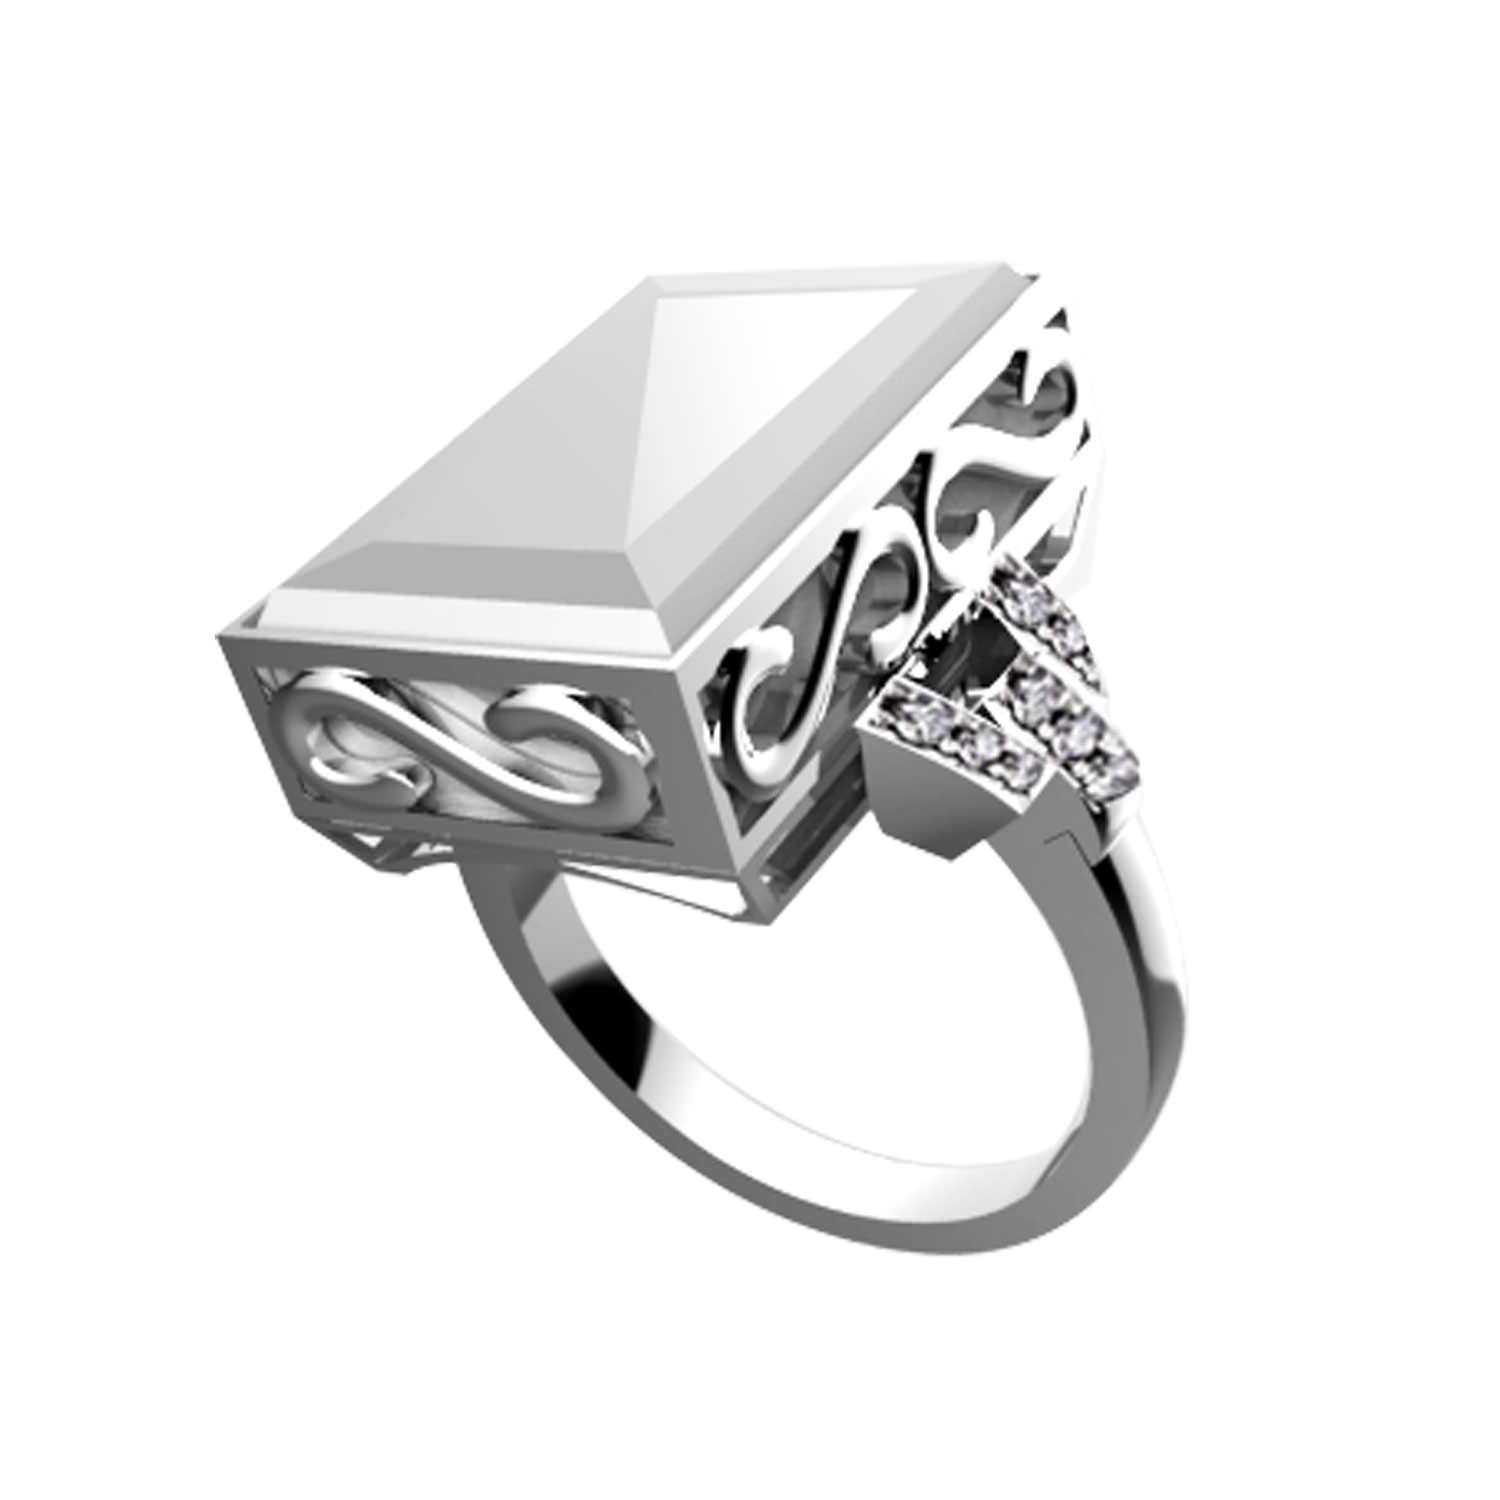 7 Ares Smart Ring - Silver & White - Buy Smart Rings